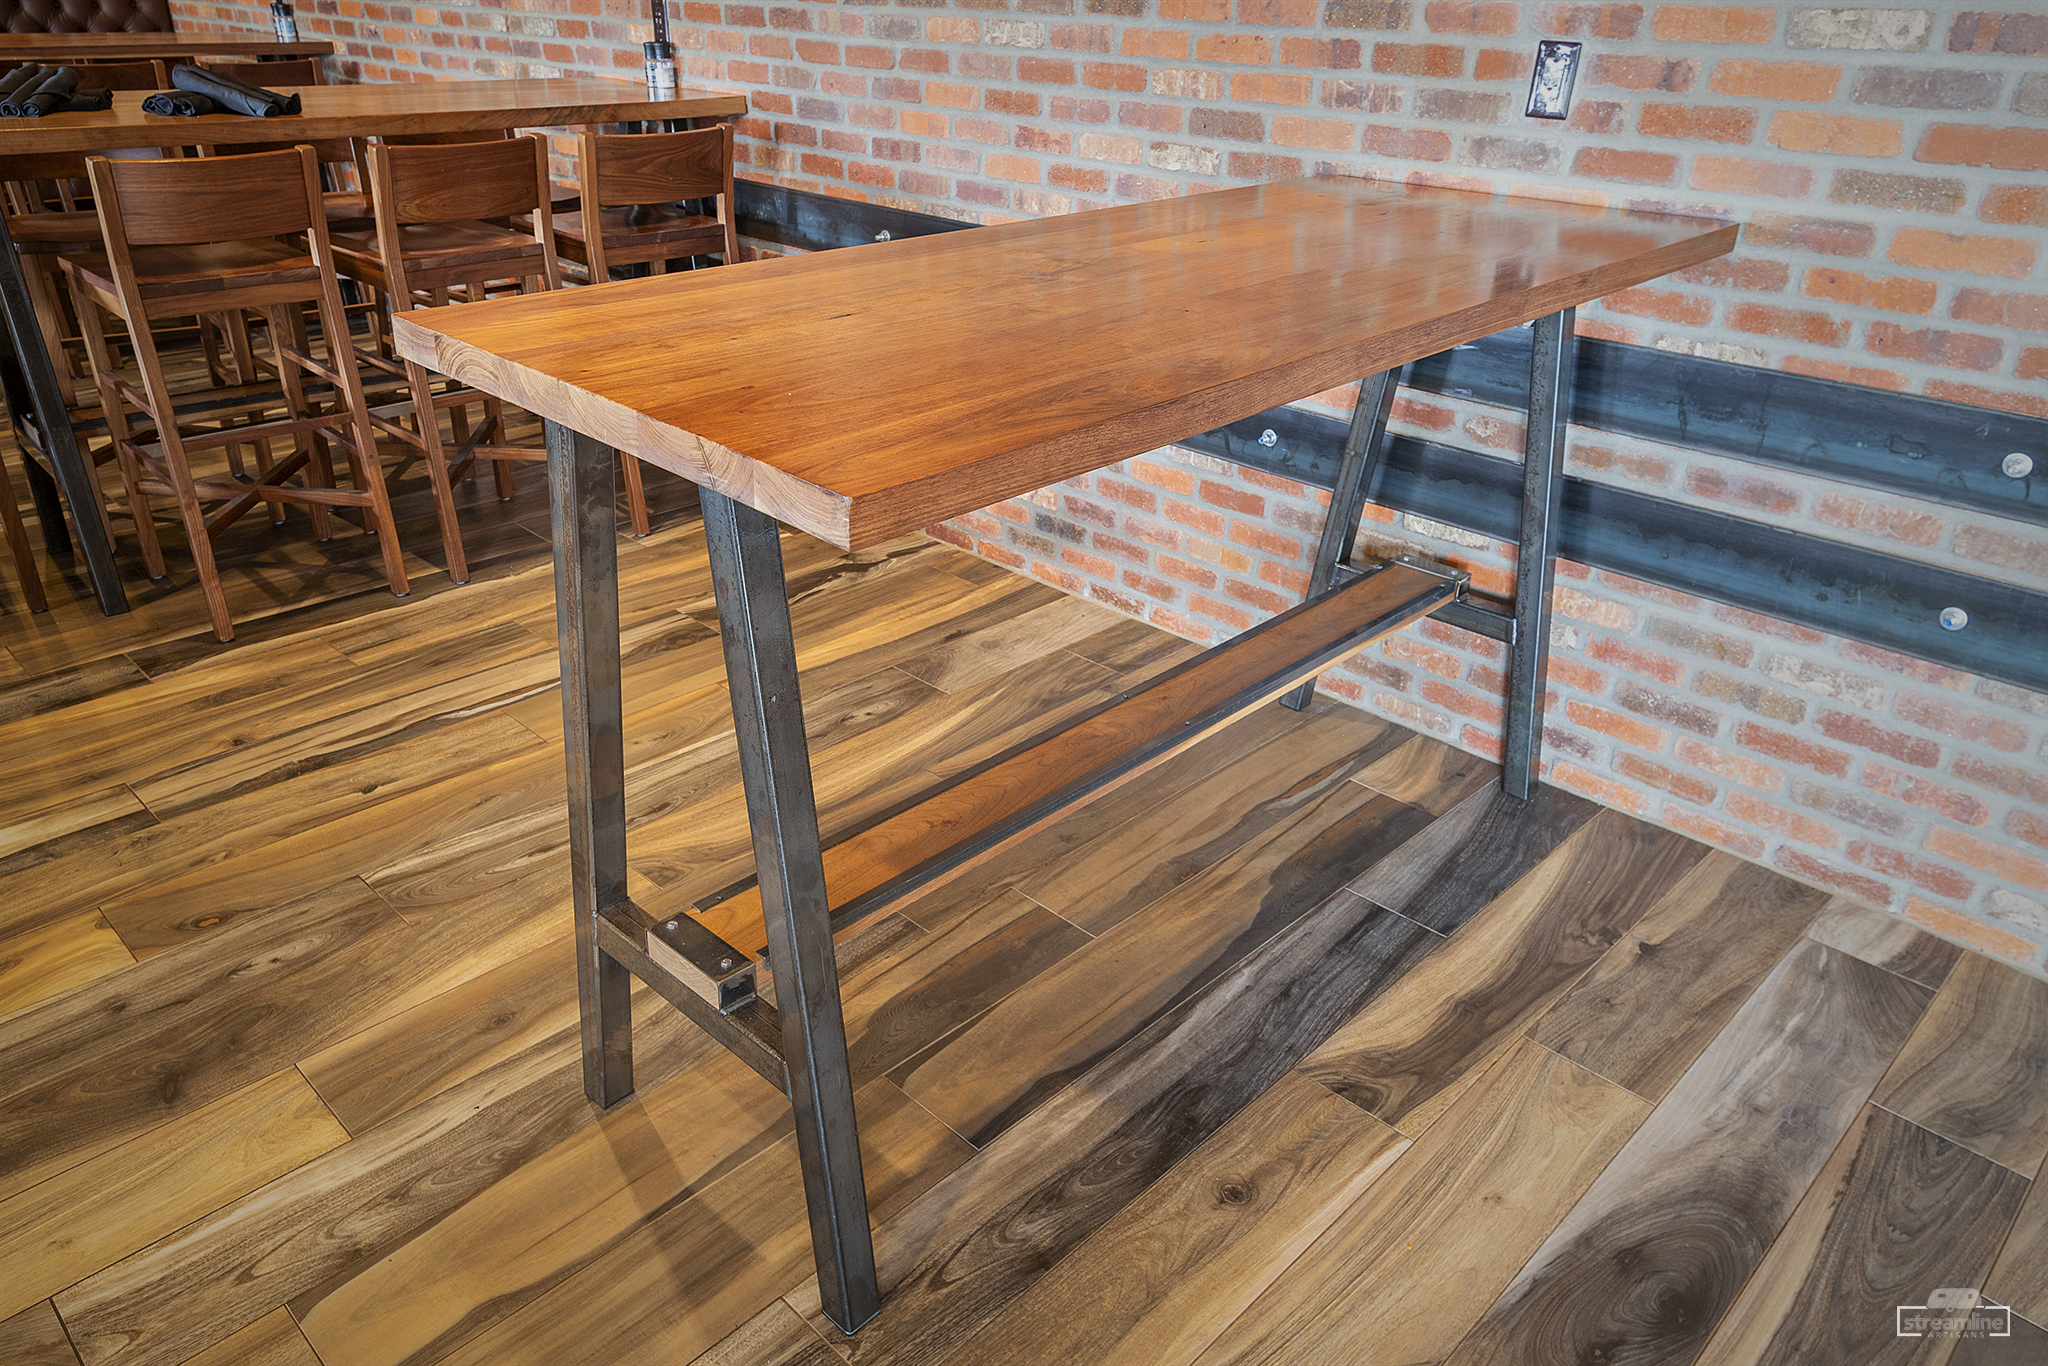 We build to your specs - Elegant and modern. Bold and industrial. Warm and rustic. Our team of designers and fabricators can create designs in whatever style you choose.